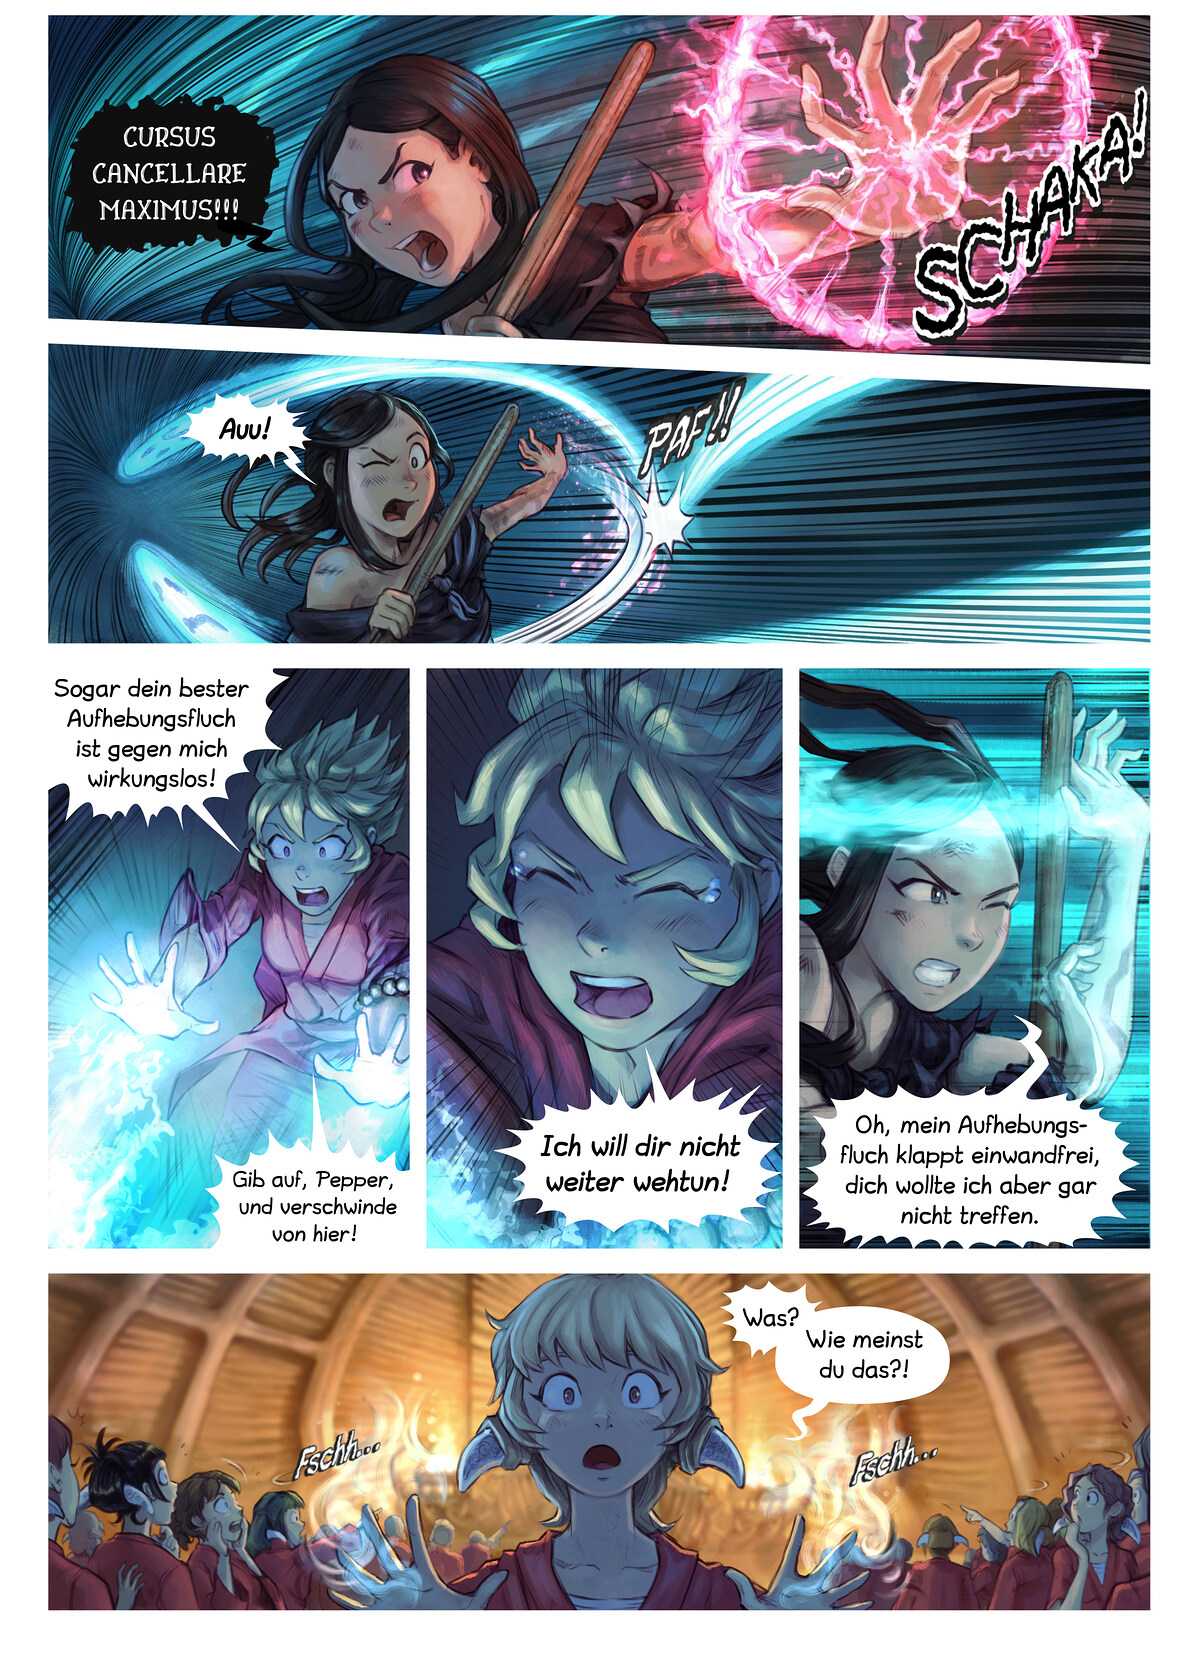 Episode 34: Shichimis Abschluss, Page 7